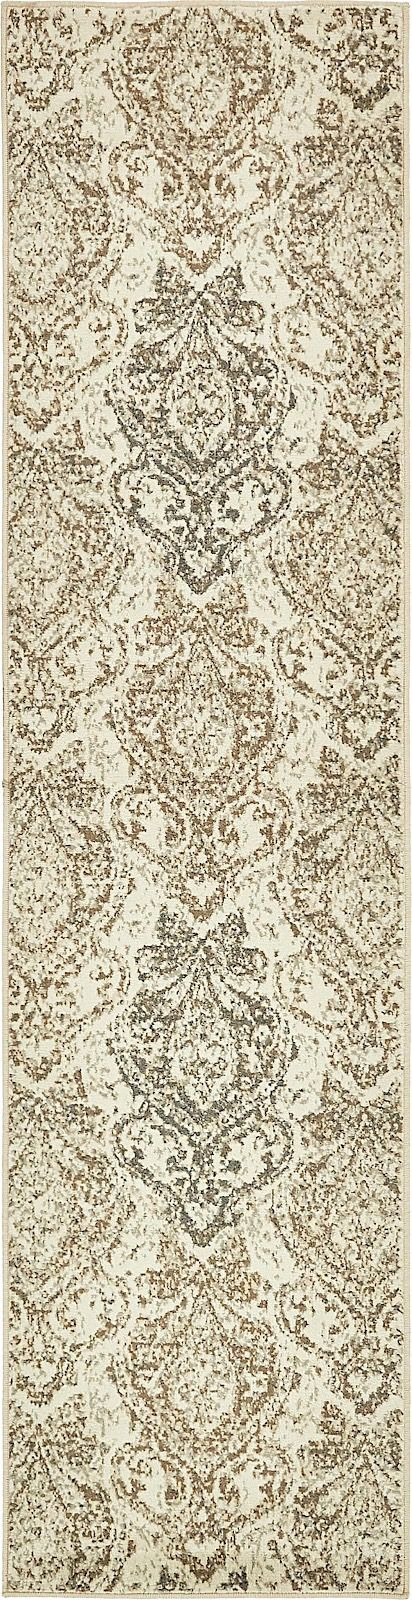 torvis contemporary area rug collection